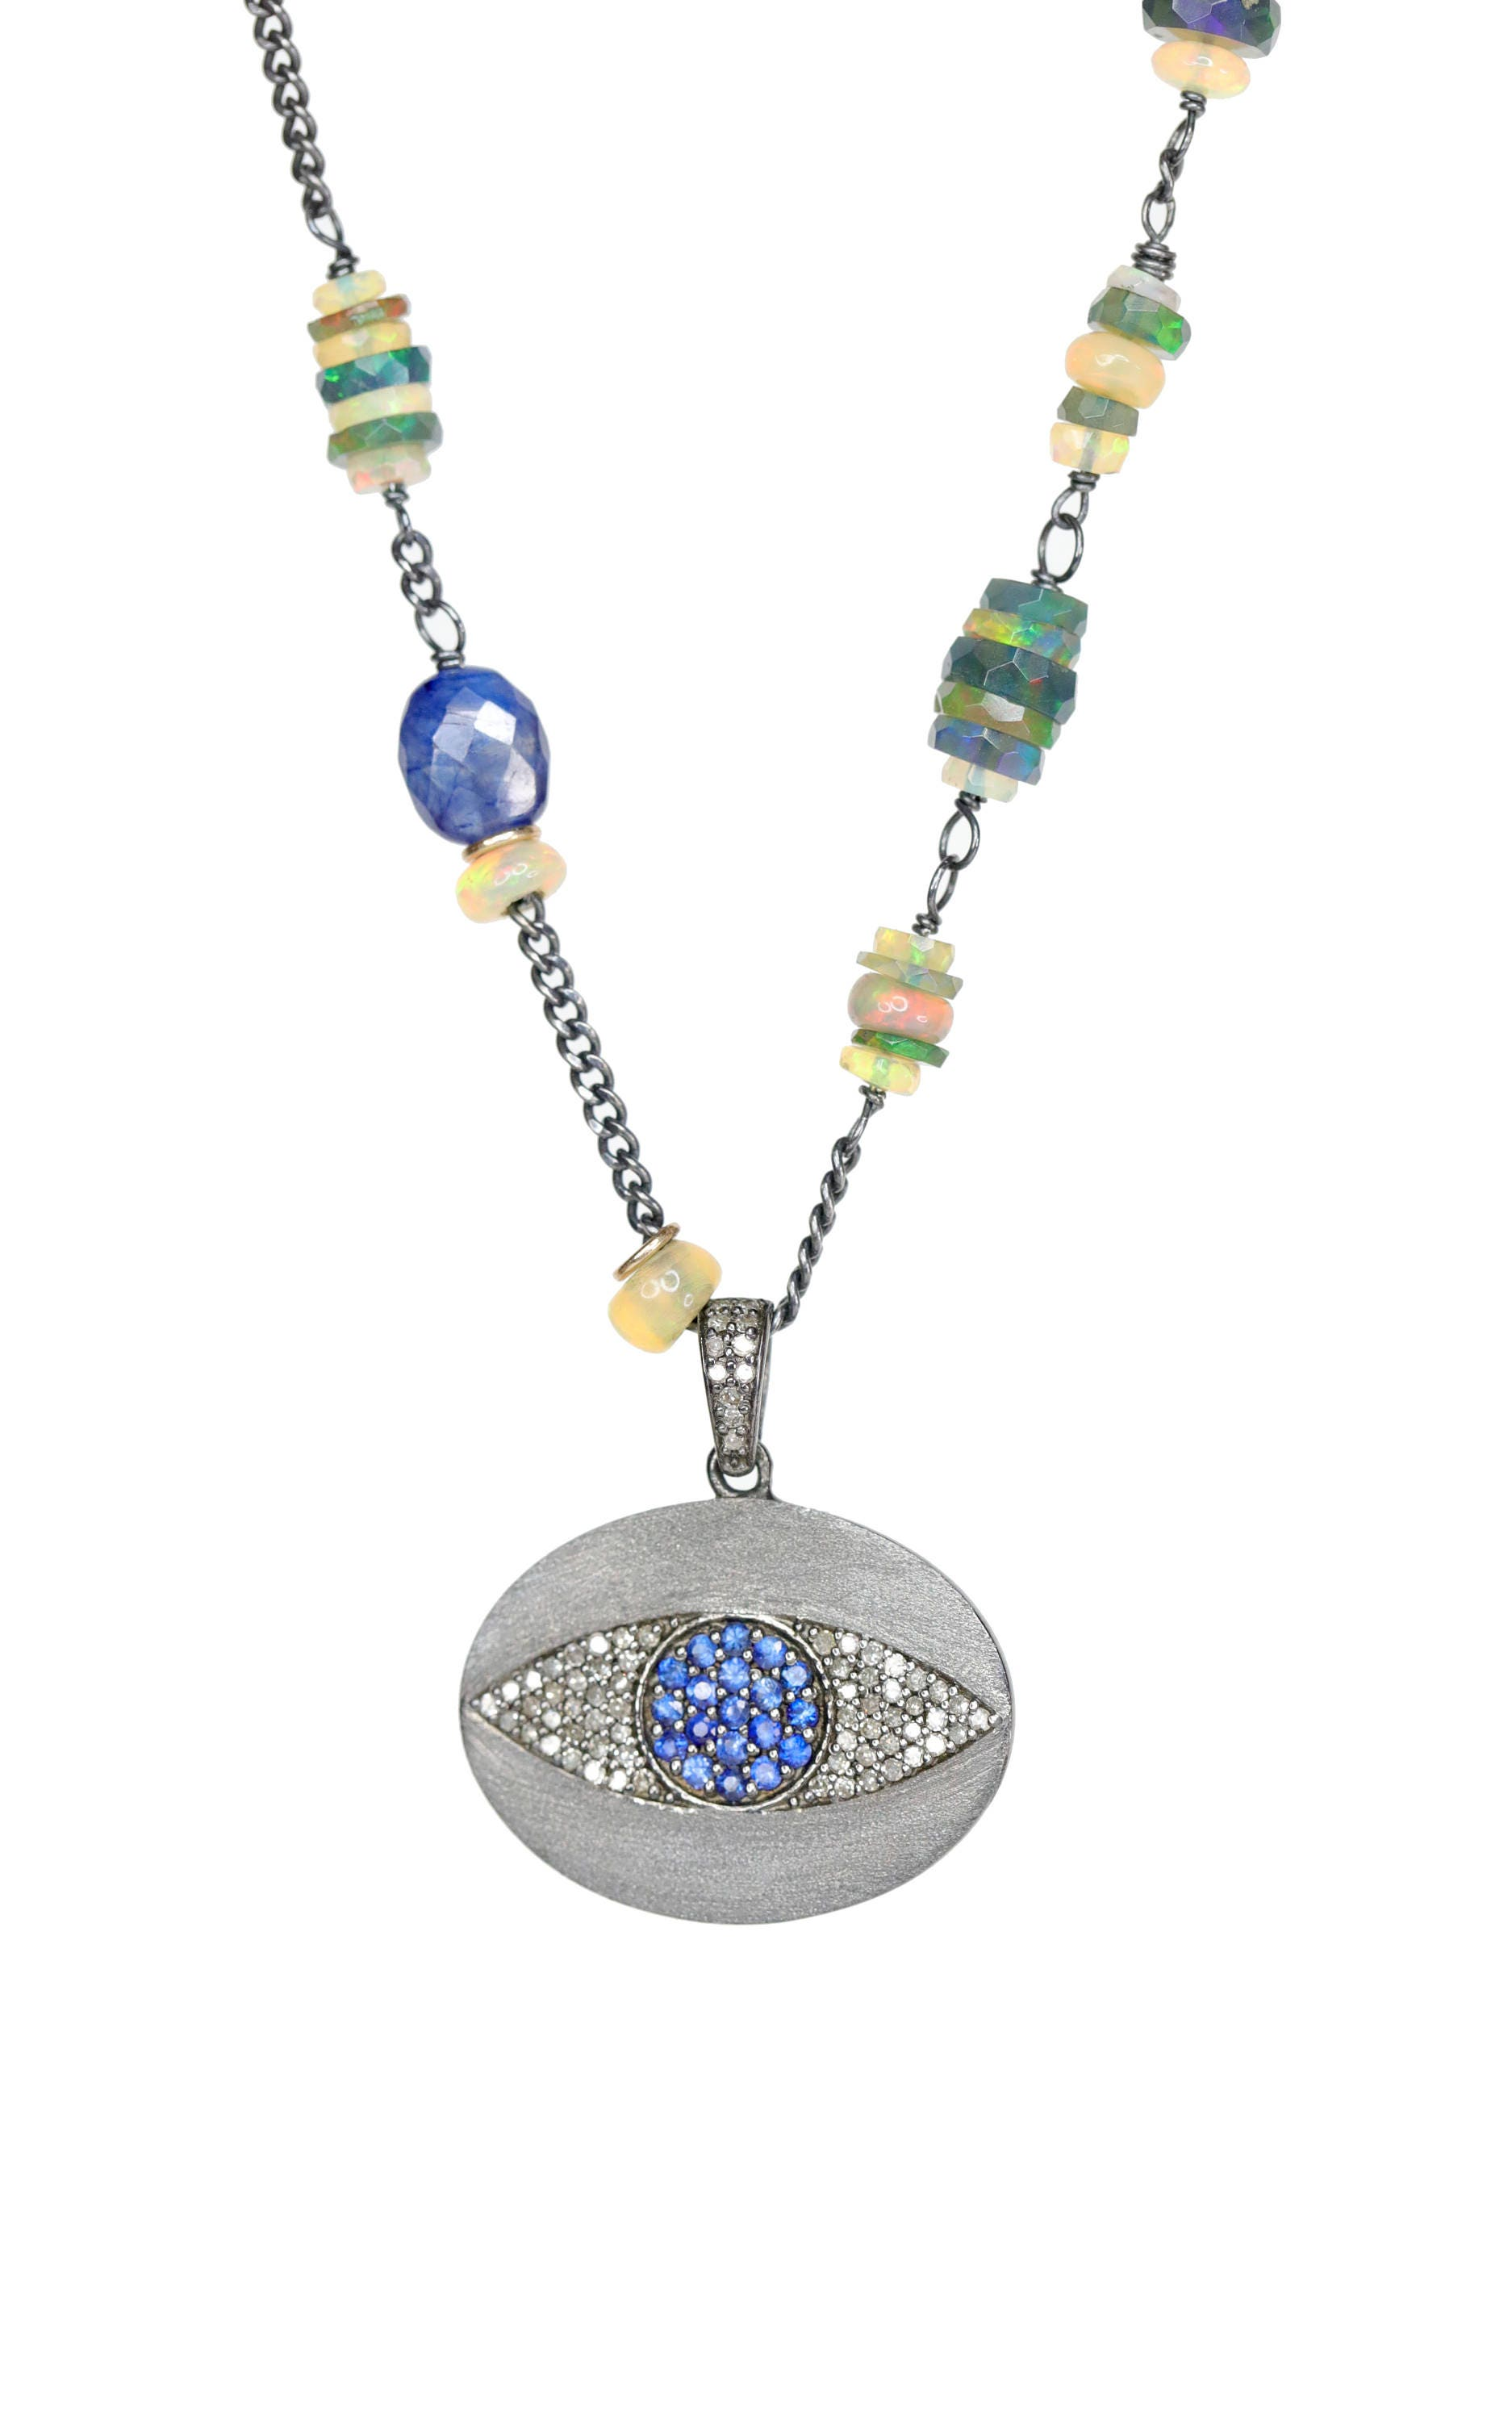 Evil Eye Pendant Necklace Blue Sapphire blue opal Pave Diamond Black Opal  jewelry sterling silver gift for her beaded womens gift 4b49495a34